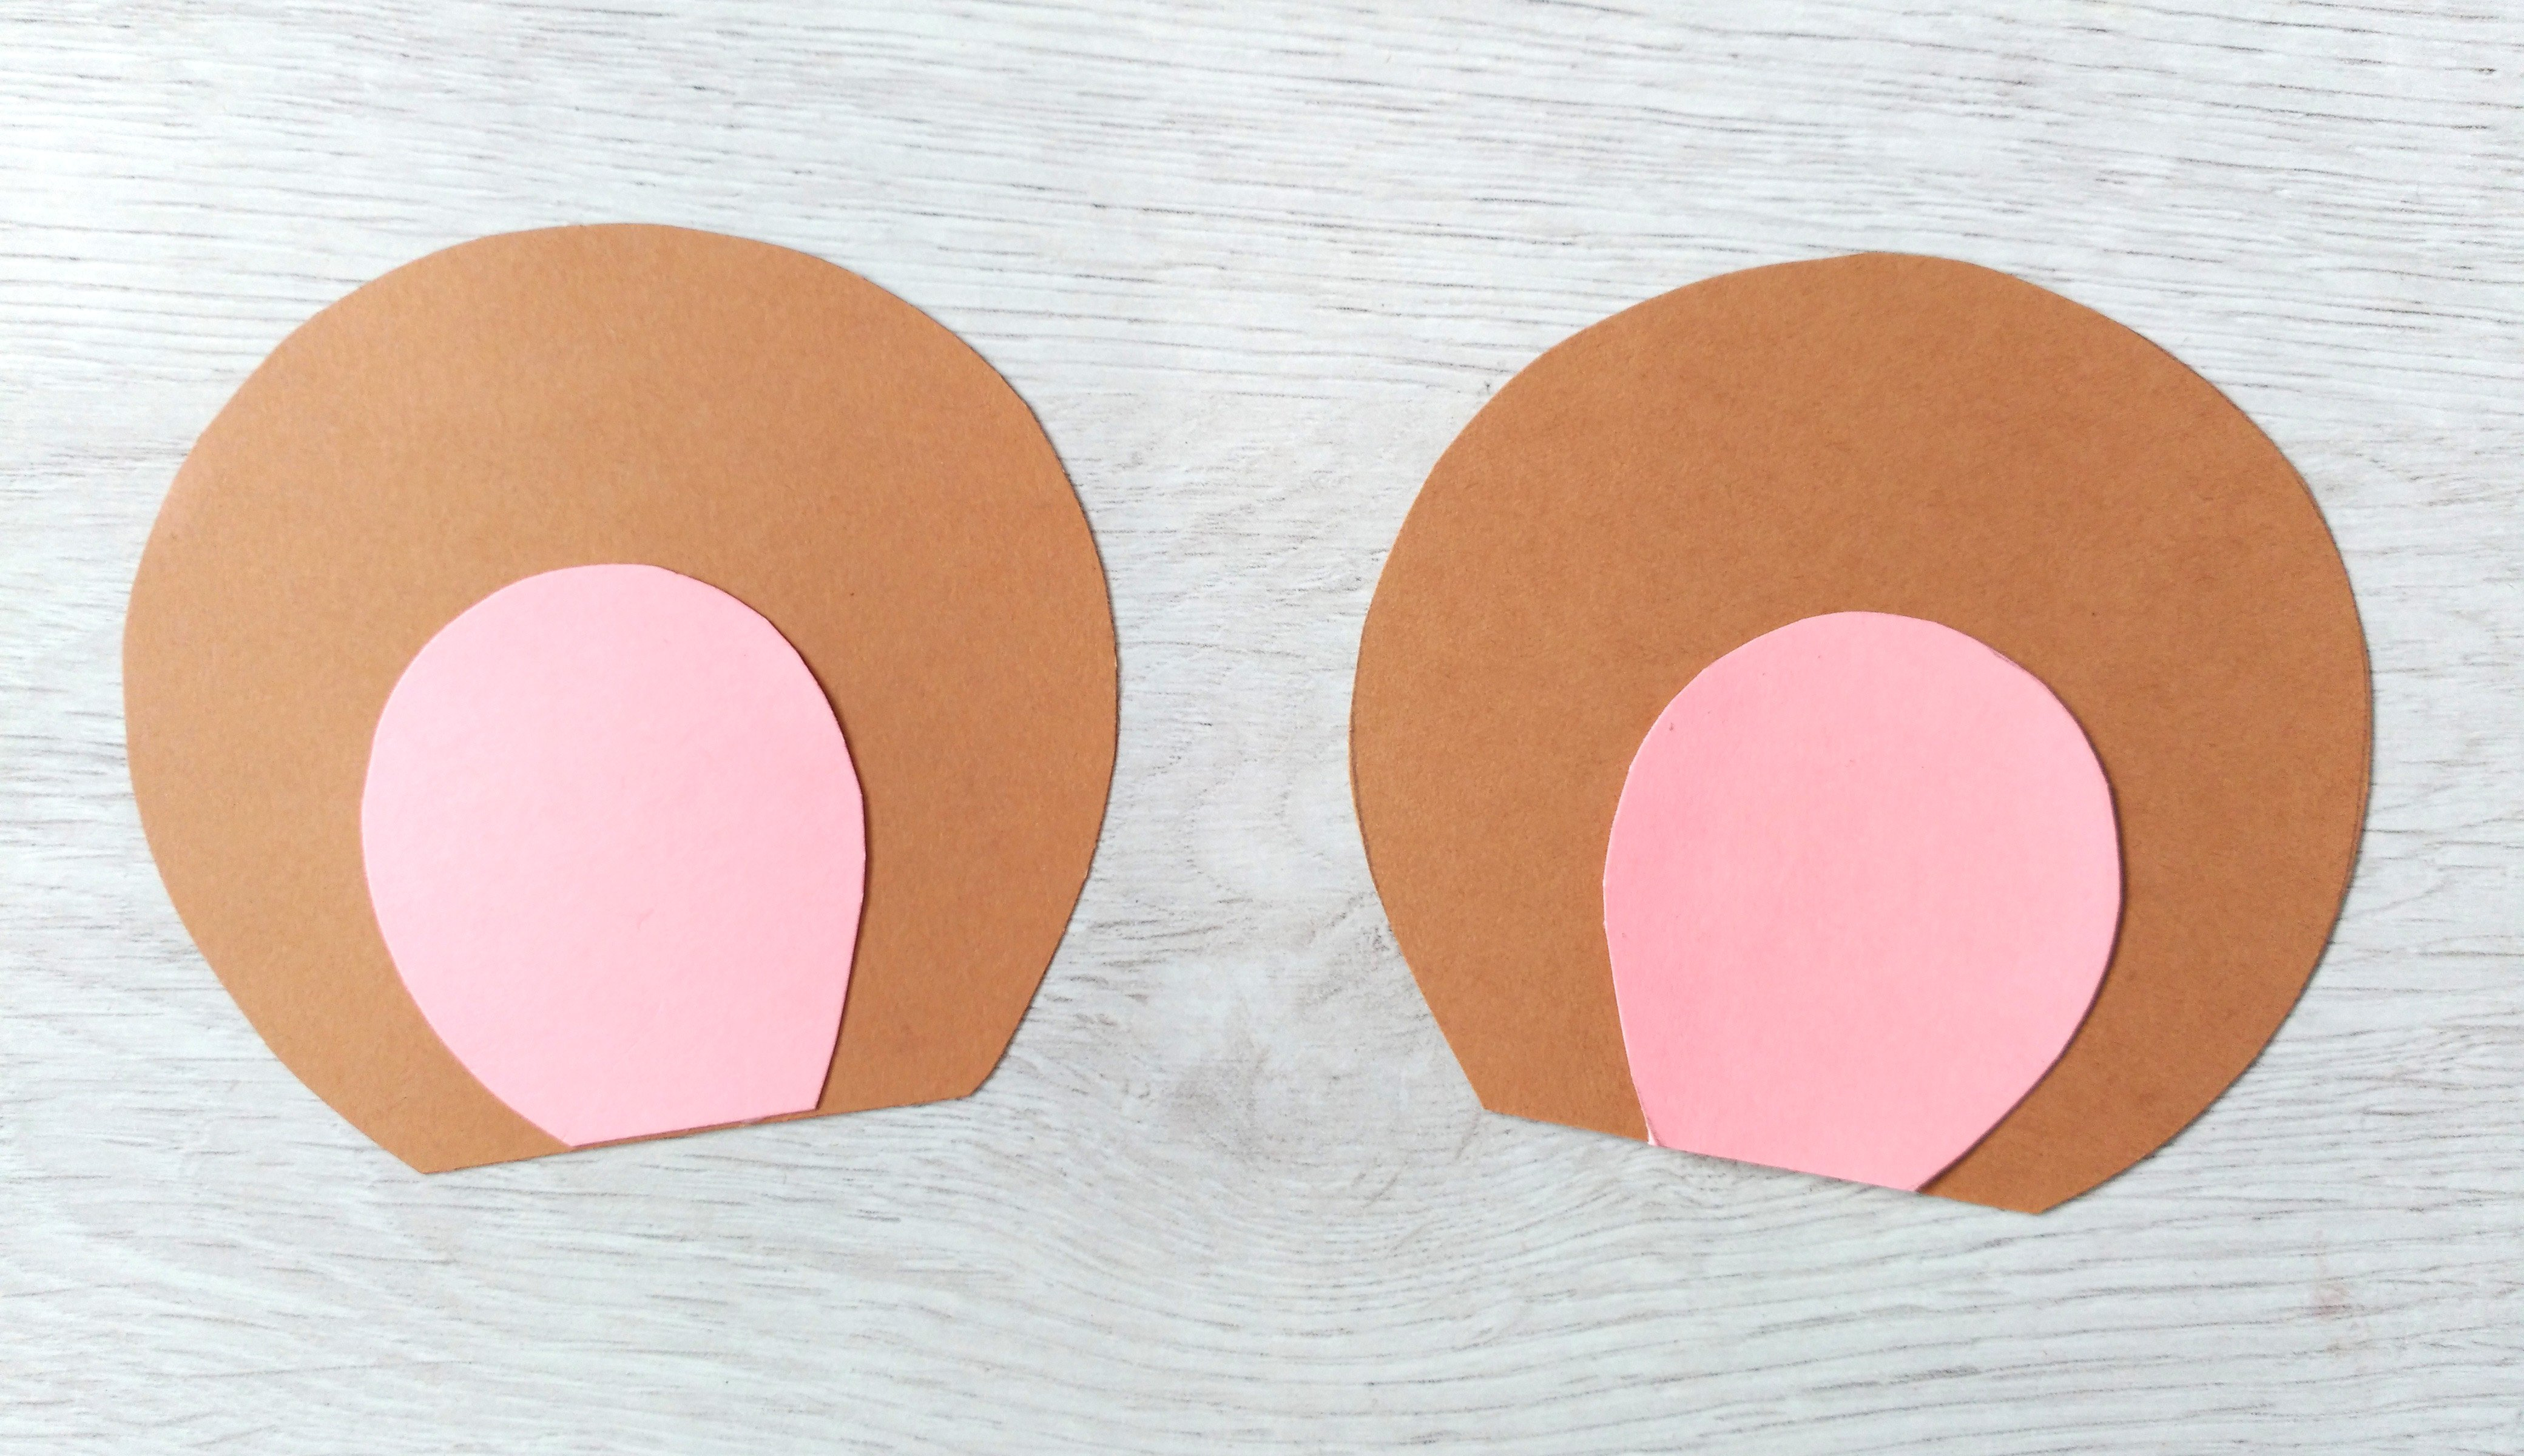 3. If you're using the template version, stick the pink inner ears onto the outer ears.